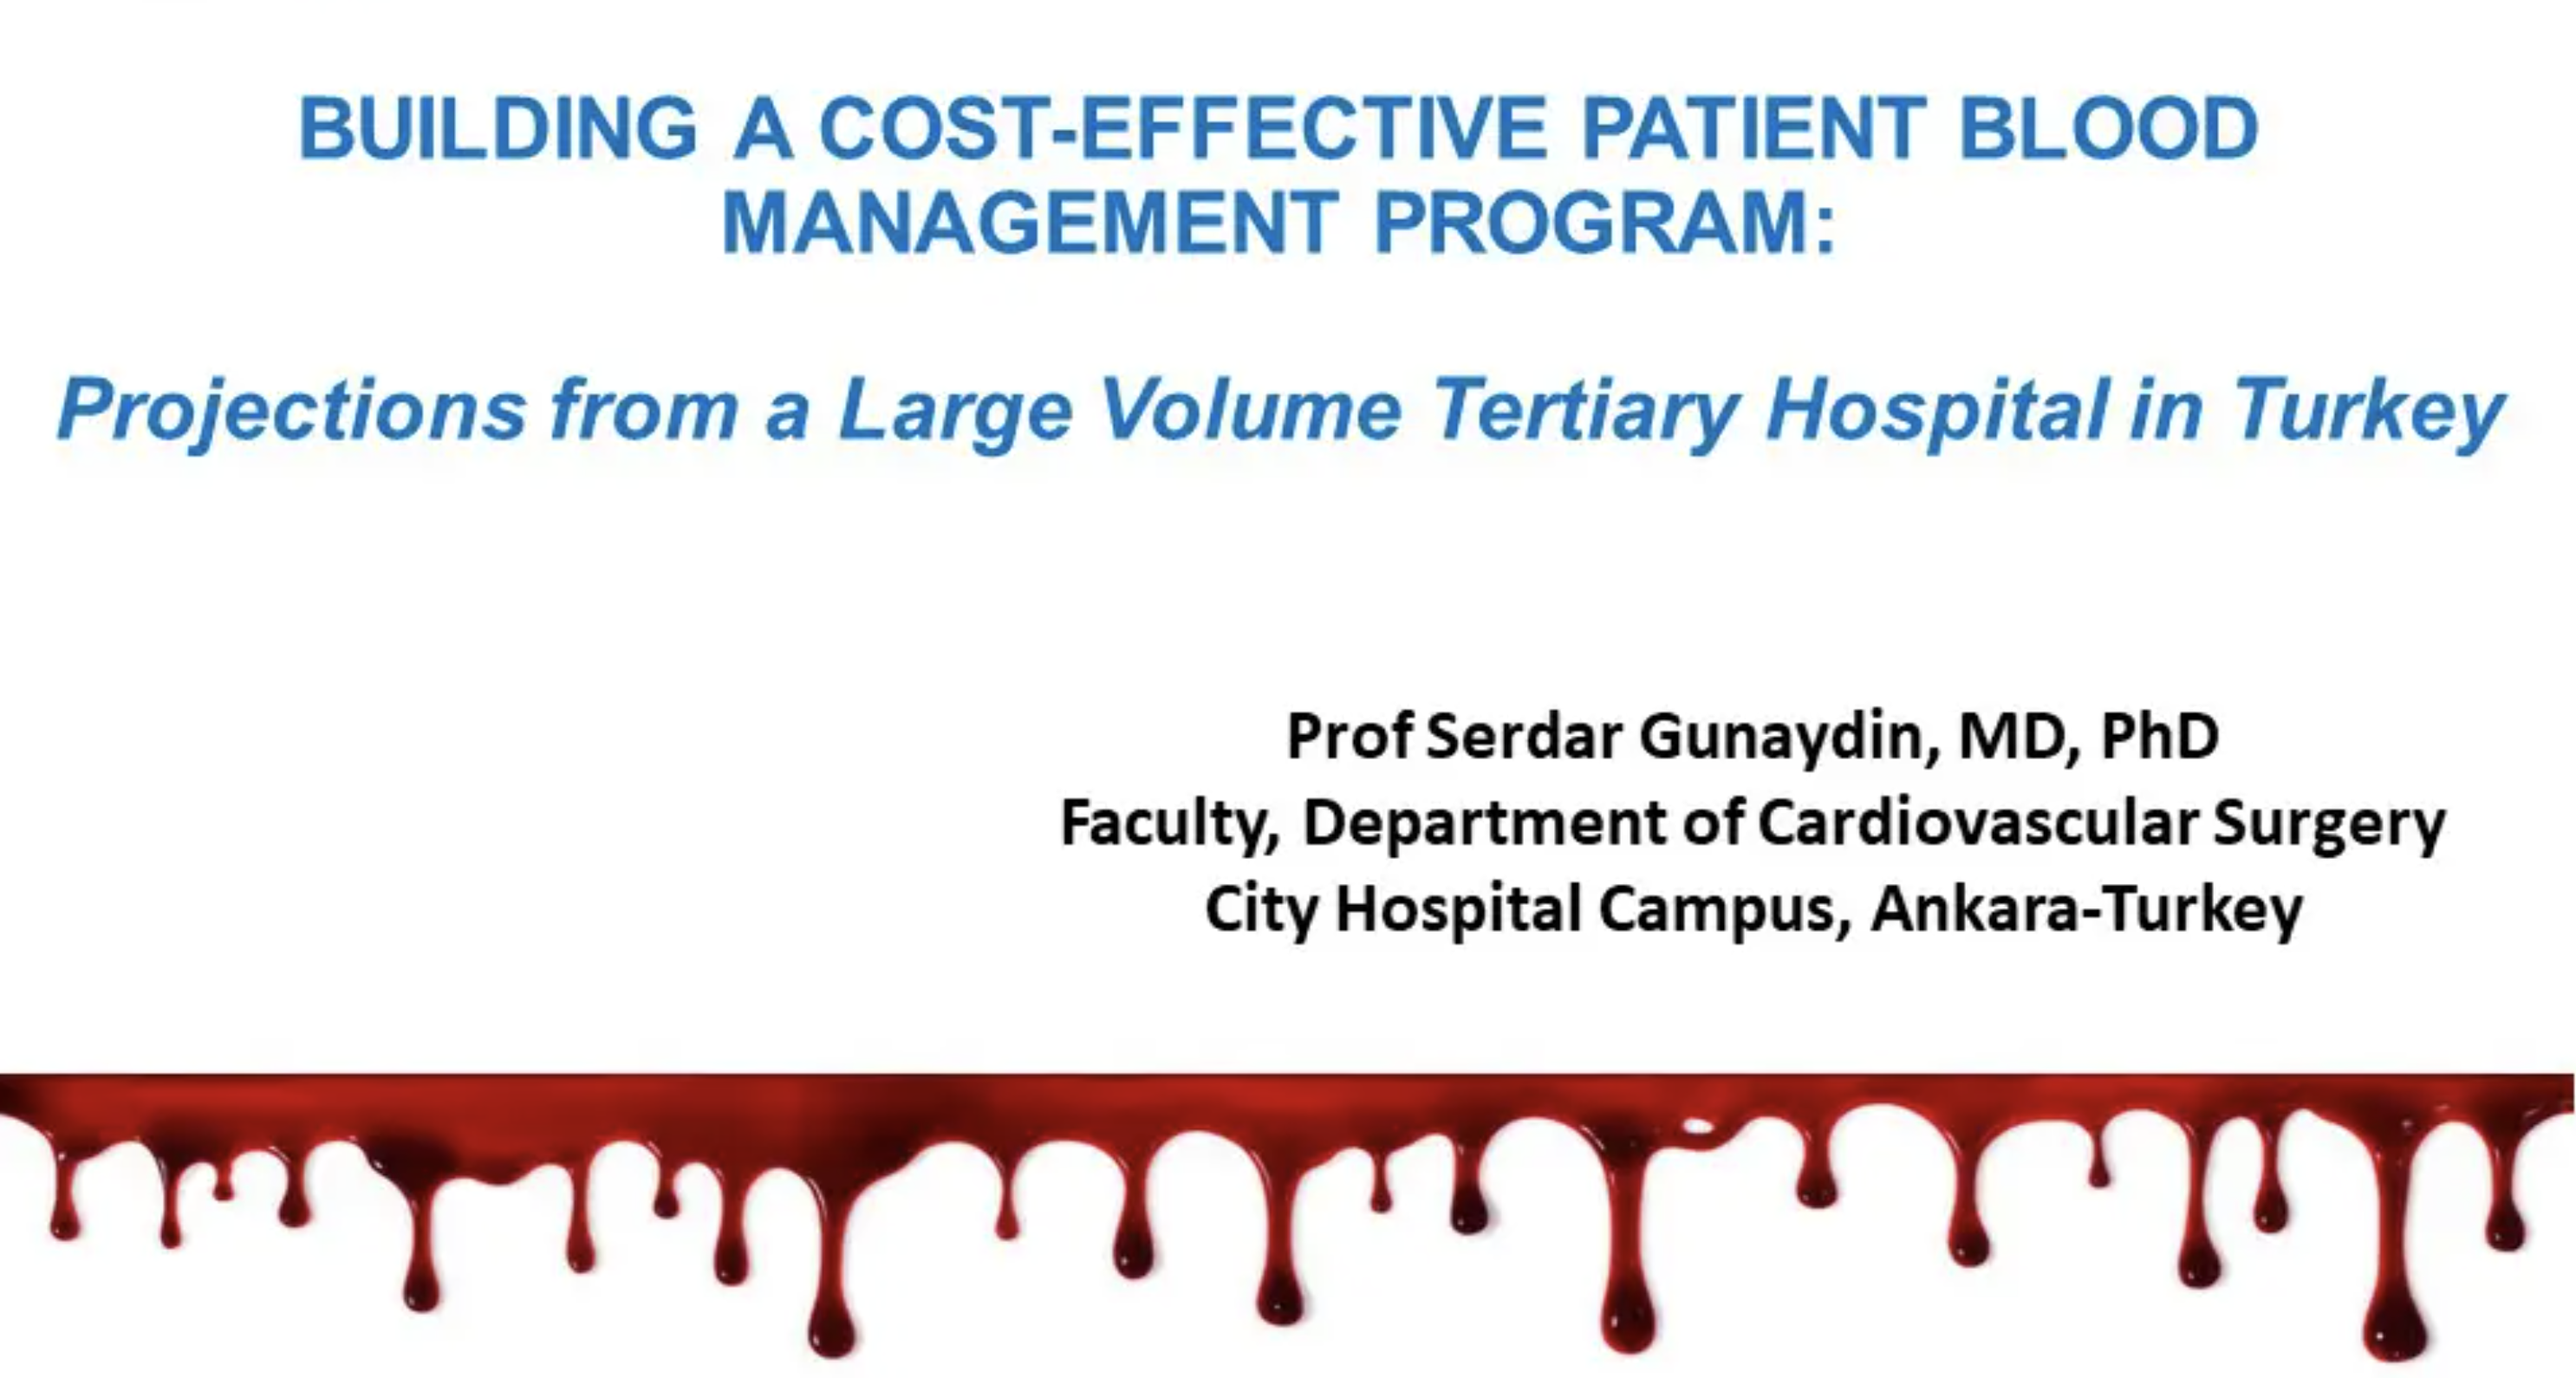 Building a cost-effective PBM Program - Projections from a Large Volume Tertiary Hospital in Turkey